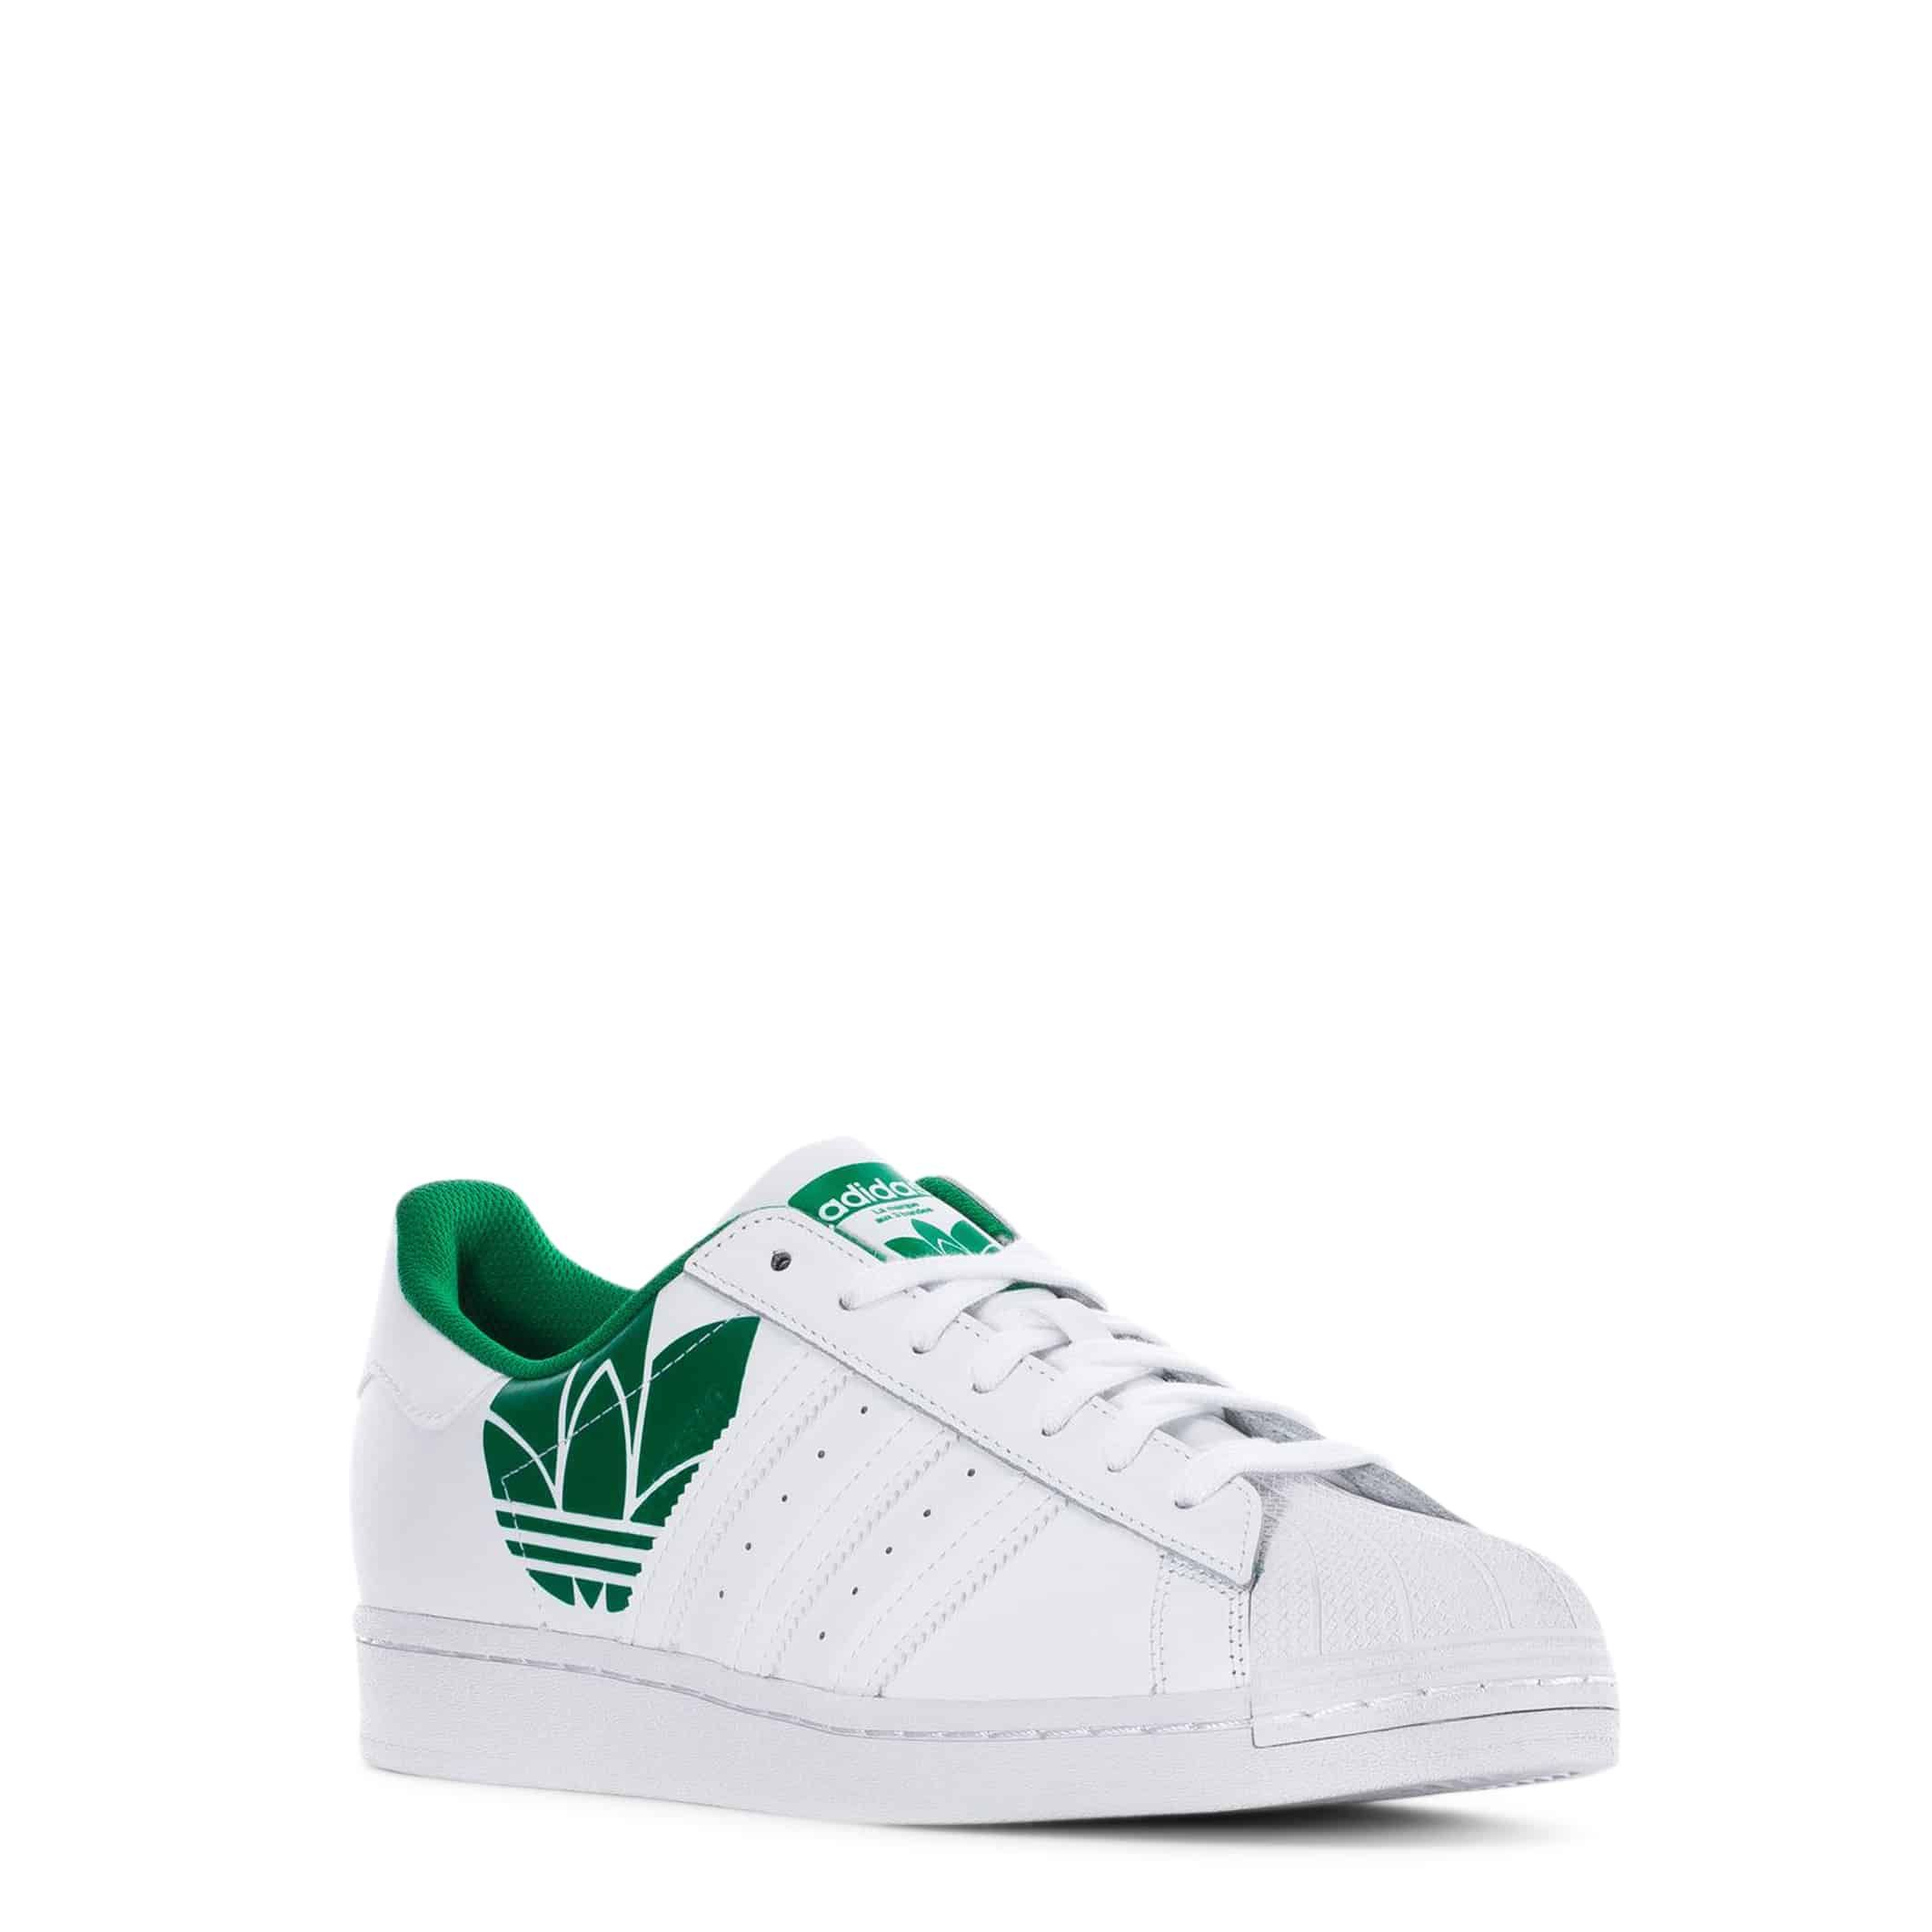 Shoes Adidas – Superstar